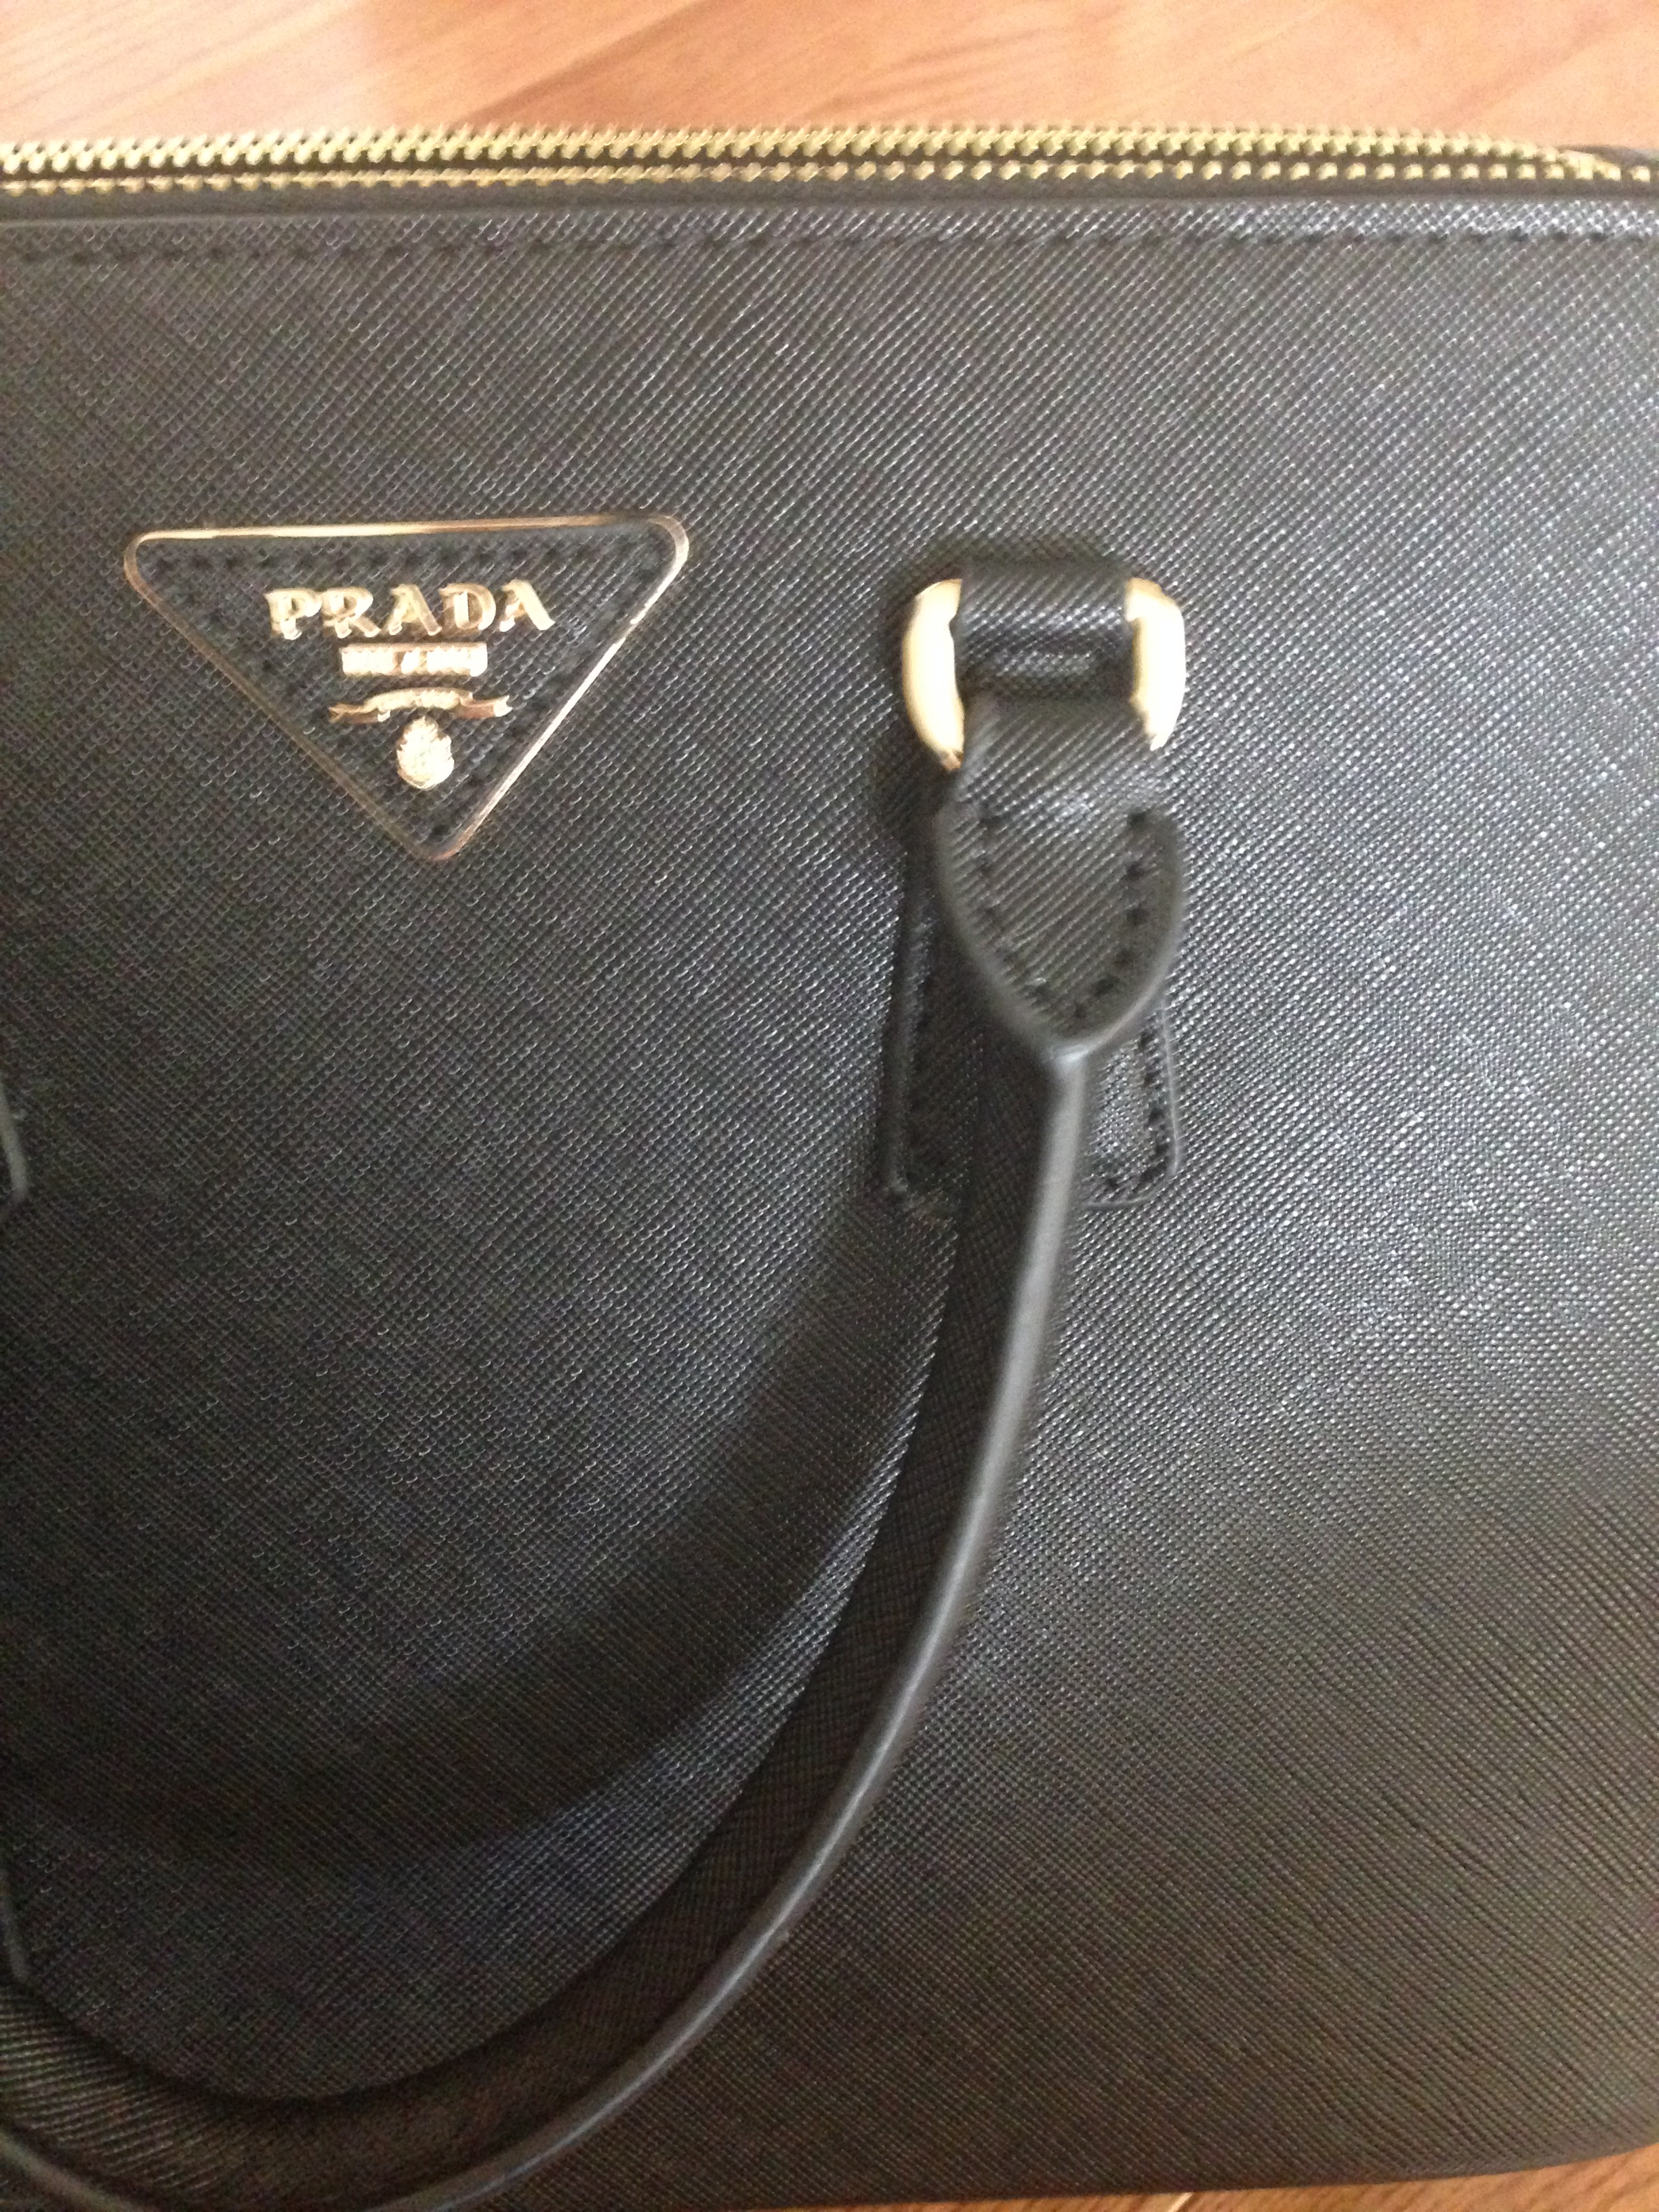 real prada bag vs fake